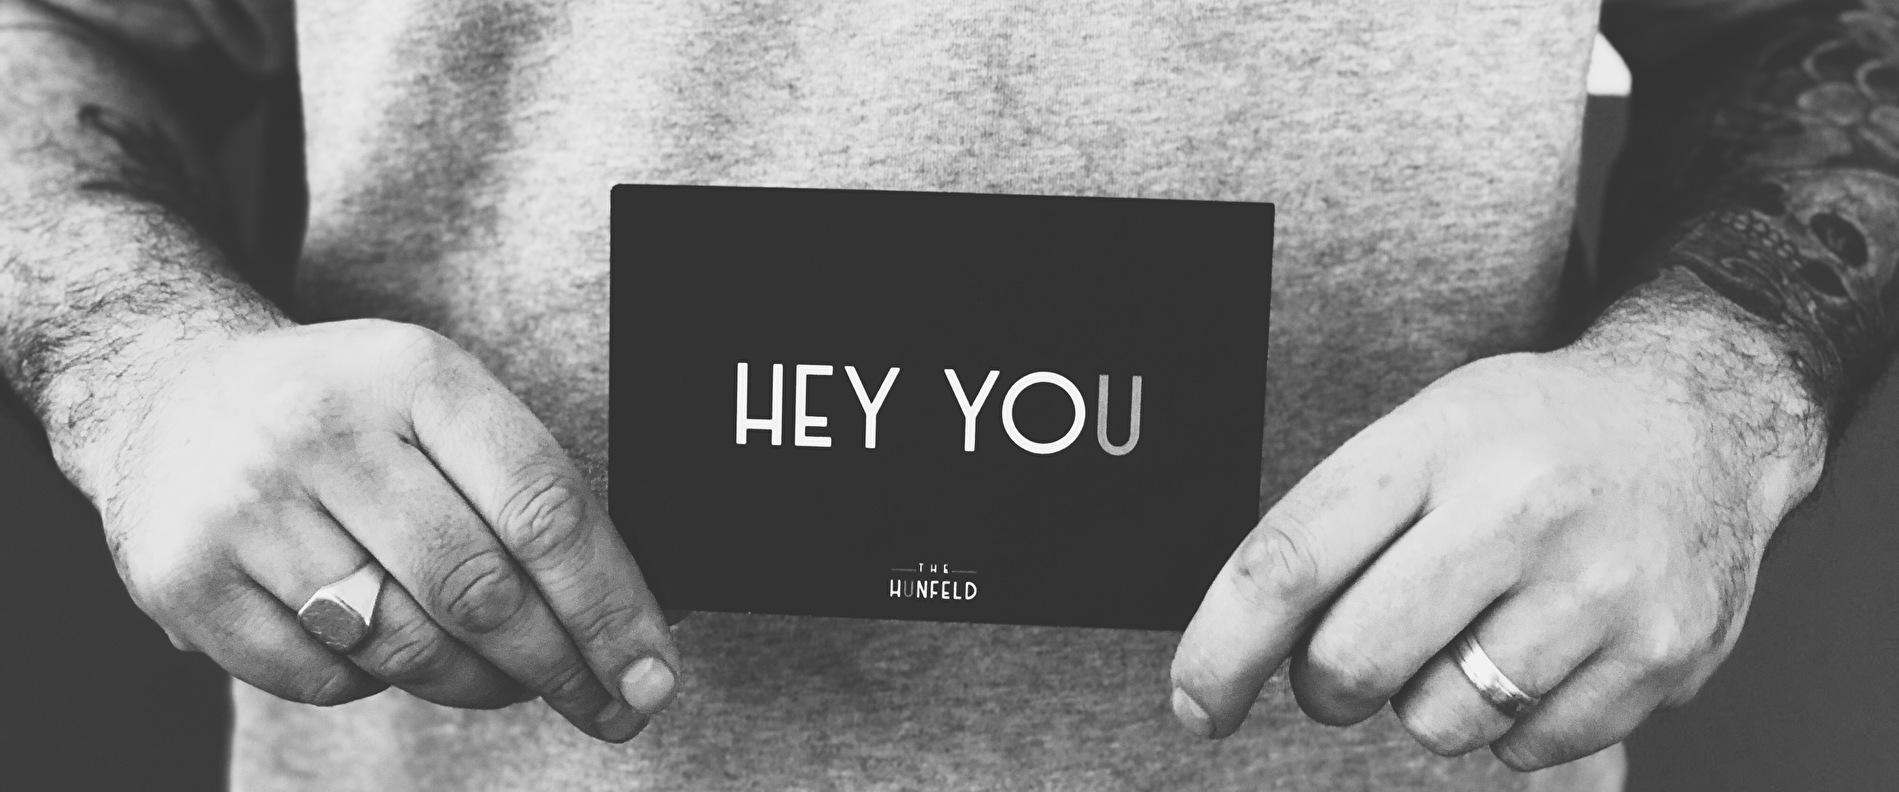 HEY YOU - THE HUNFELD